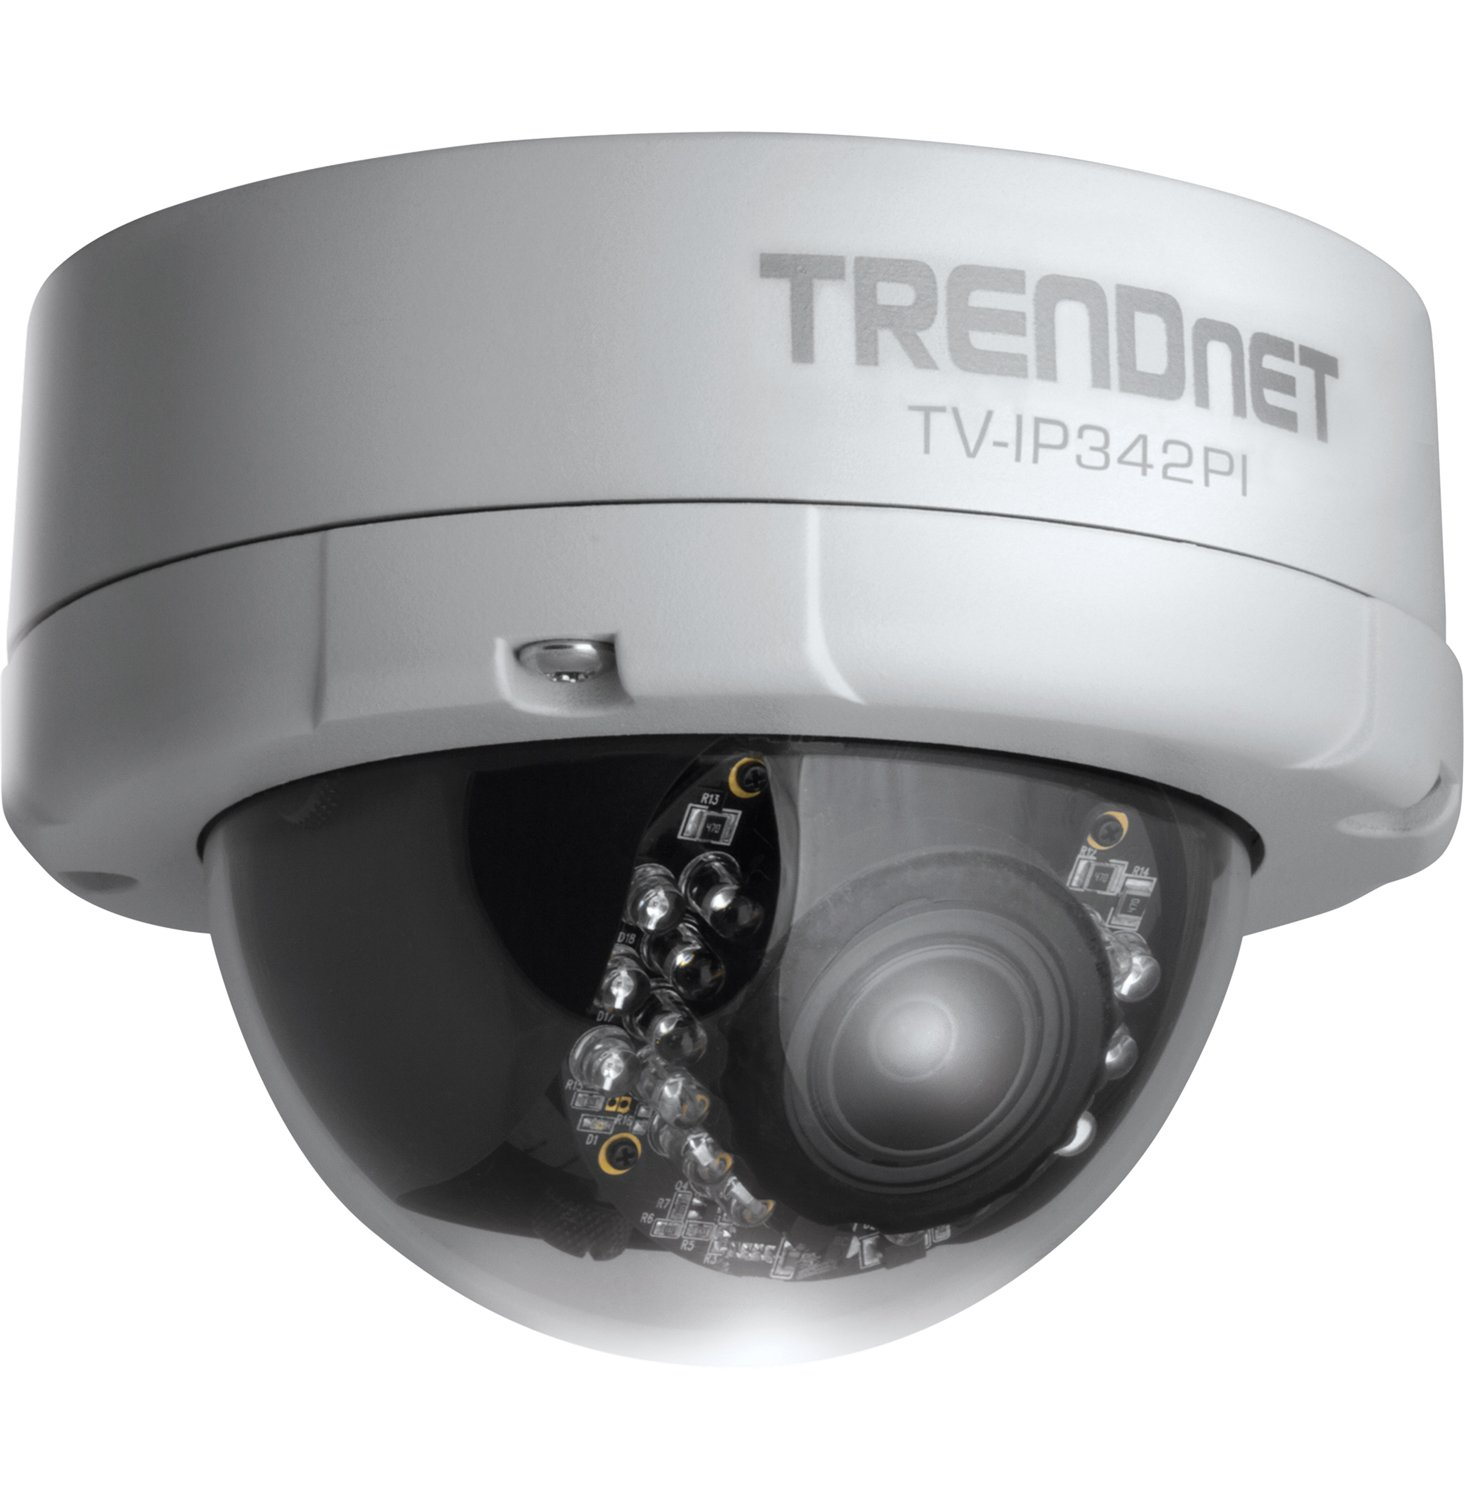 TRENDnet Indoor/Outdoor Dome Style,Vari-Focal PoE IP Camera, 2 Megapixel 1080p Full HD Resolution, 3x Optical Zoom, IP66 Weather Rated Housing, 50 ft. Night Vision, Micro SD Card slot, Digital WDR, Secu, Free TRENDnet App for Android, and IOS, ONVIF, IPv6